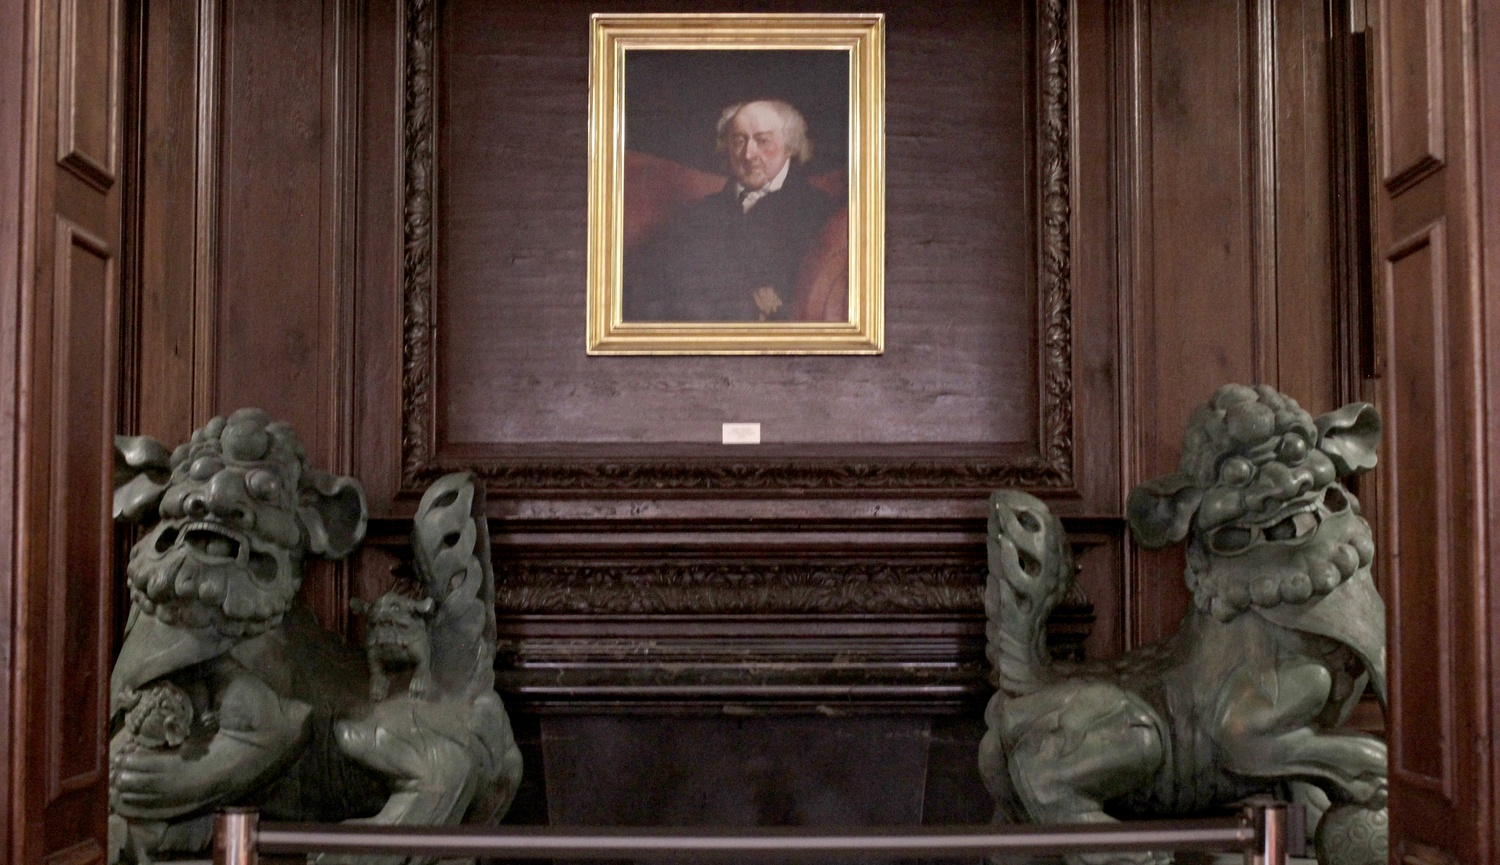 A portrait of John Adams hangs between two Chinese dragon sculptures in Adams House.